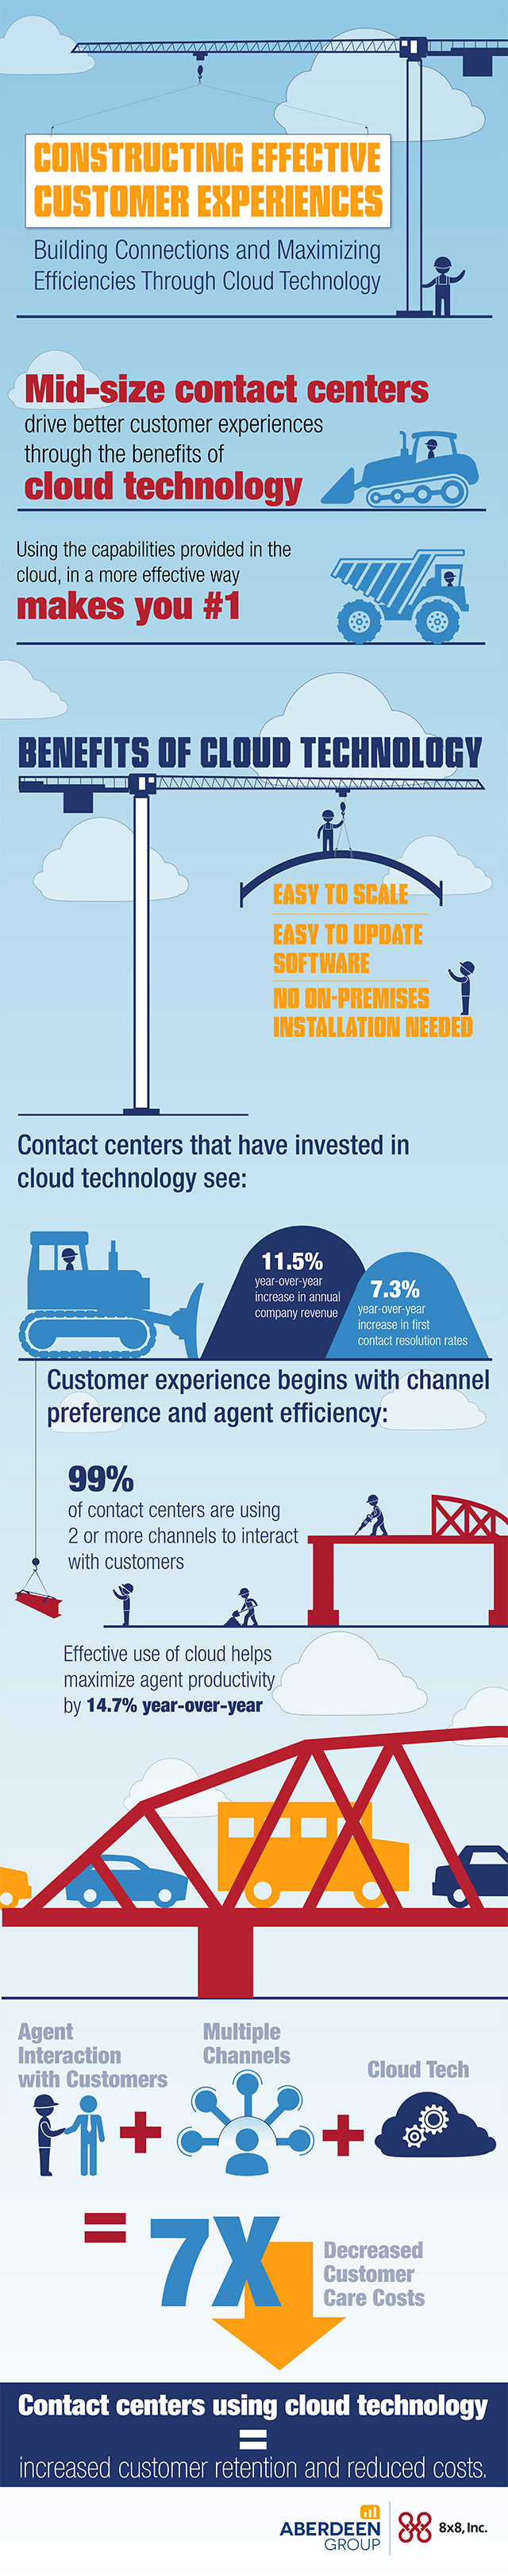 Aberdeen Cloud Contact Center Infographic